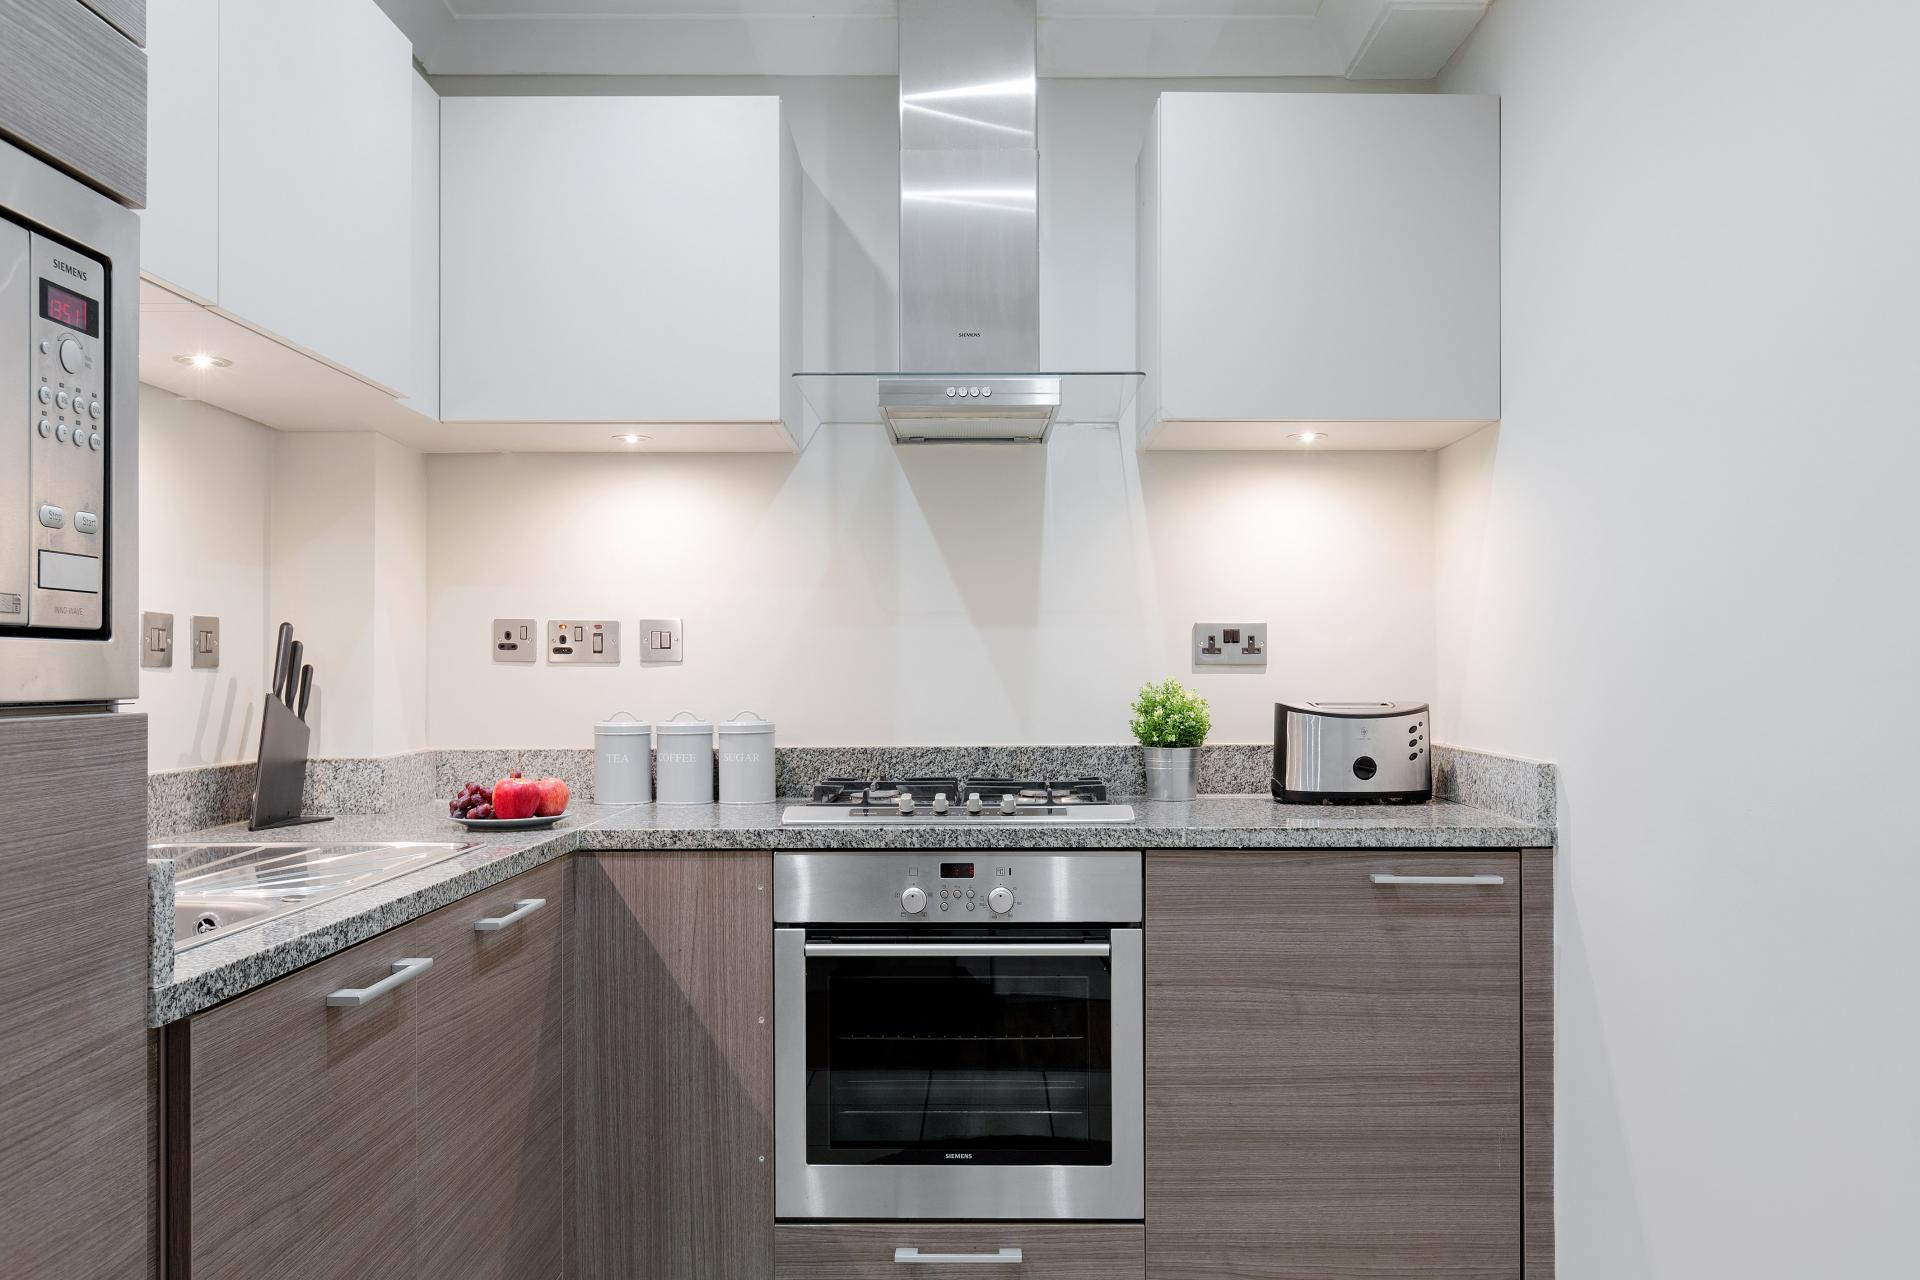 Kitchen at Heart of Shoreditch Apartments, Whitechapel, London